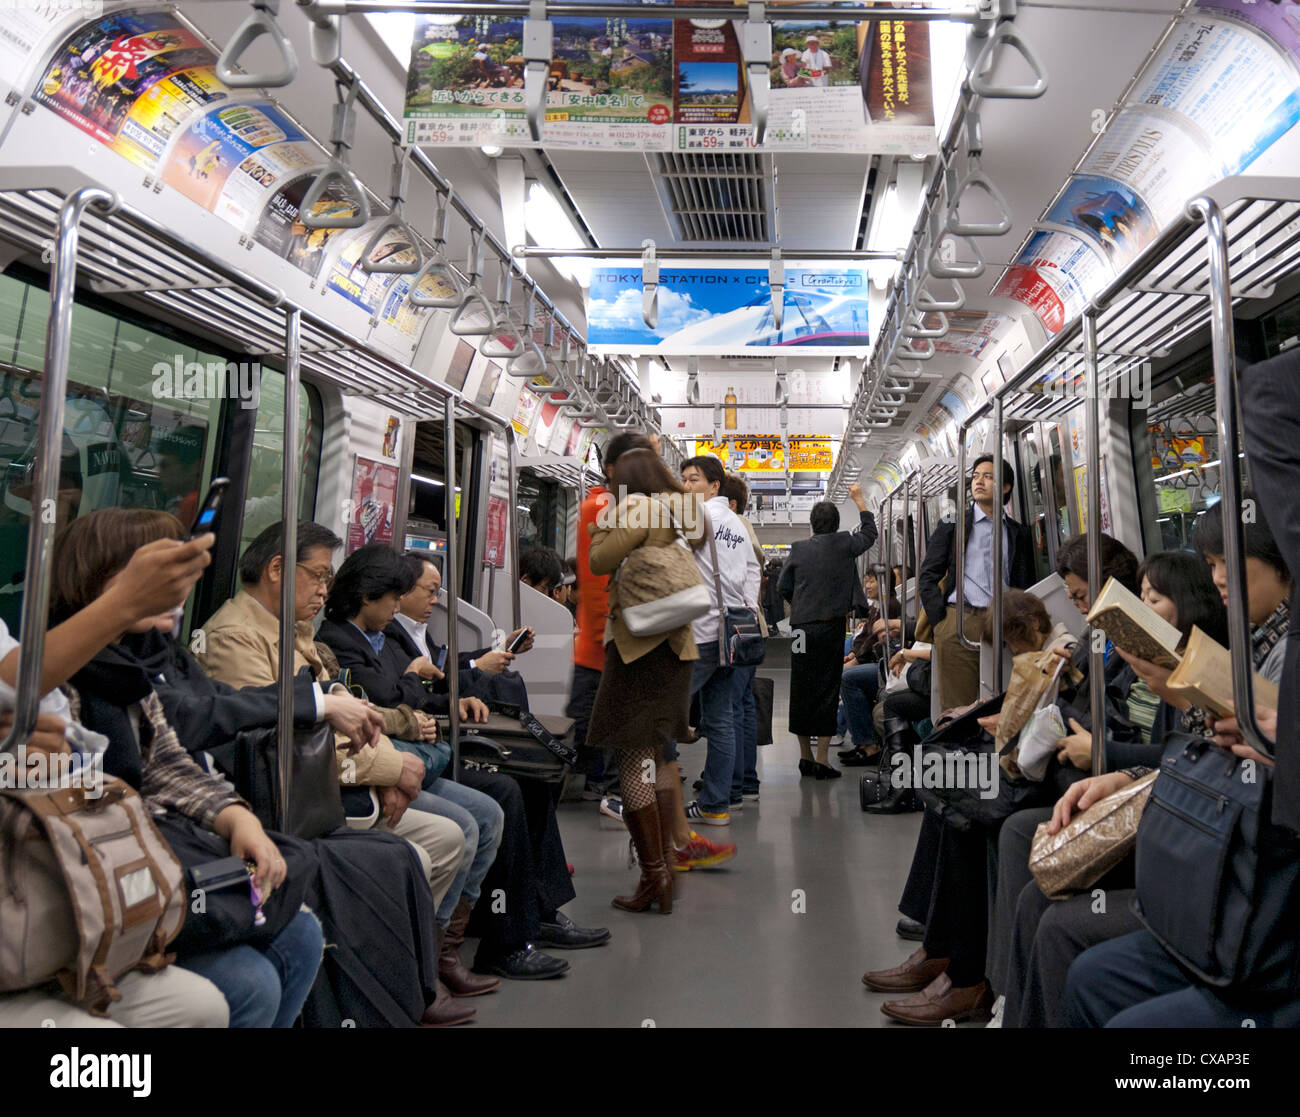 Tokyo Metro spacious carriages when not packed in rush hours, Tokyo, Japan, Asia - Stock Image